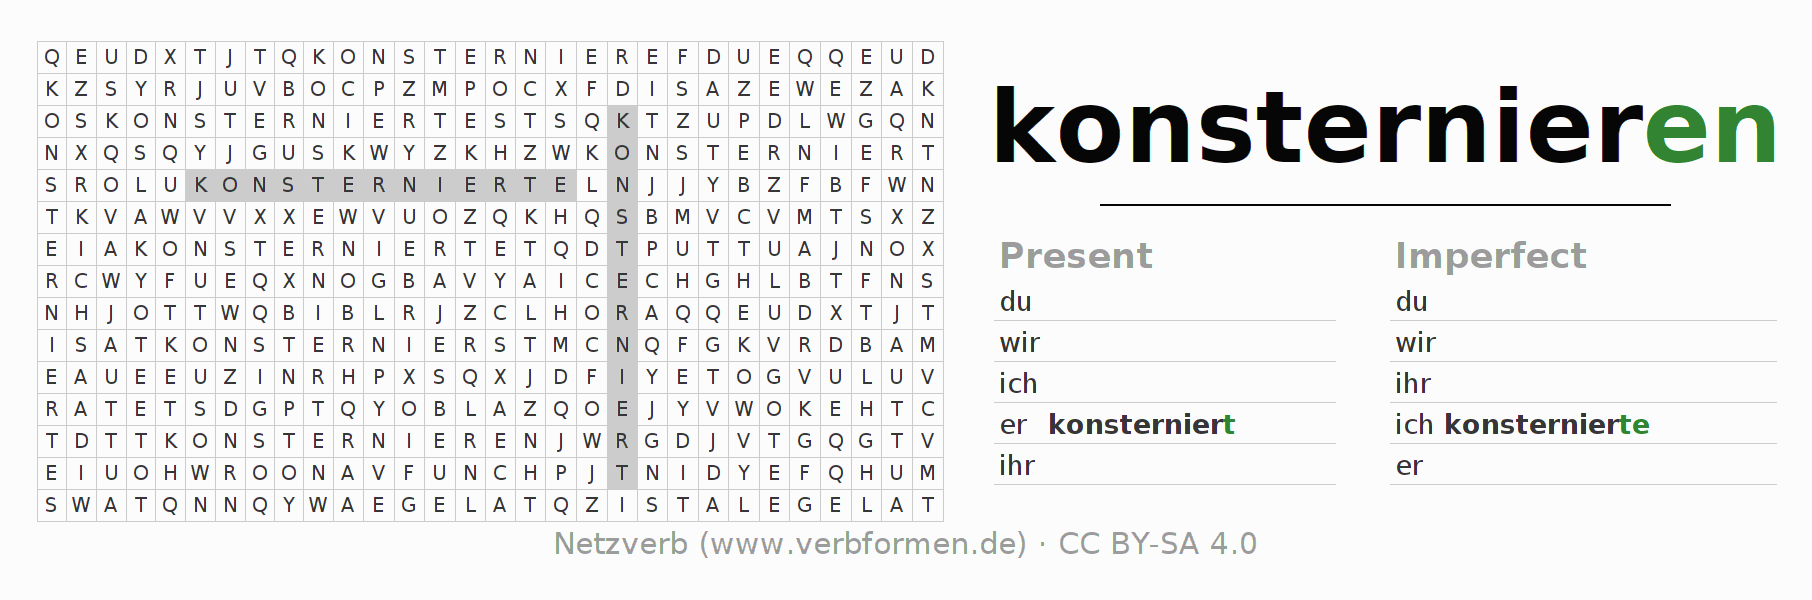 Word search puzzle for the conjugation of the verb konsternieren